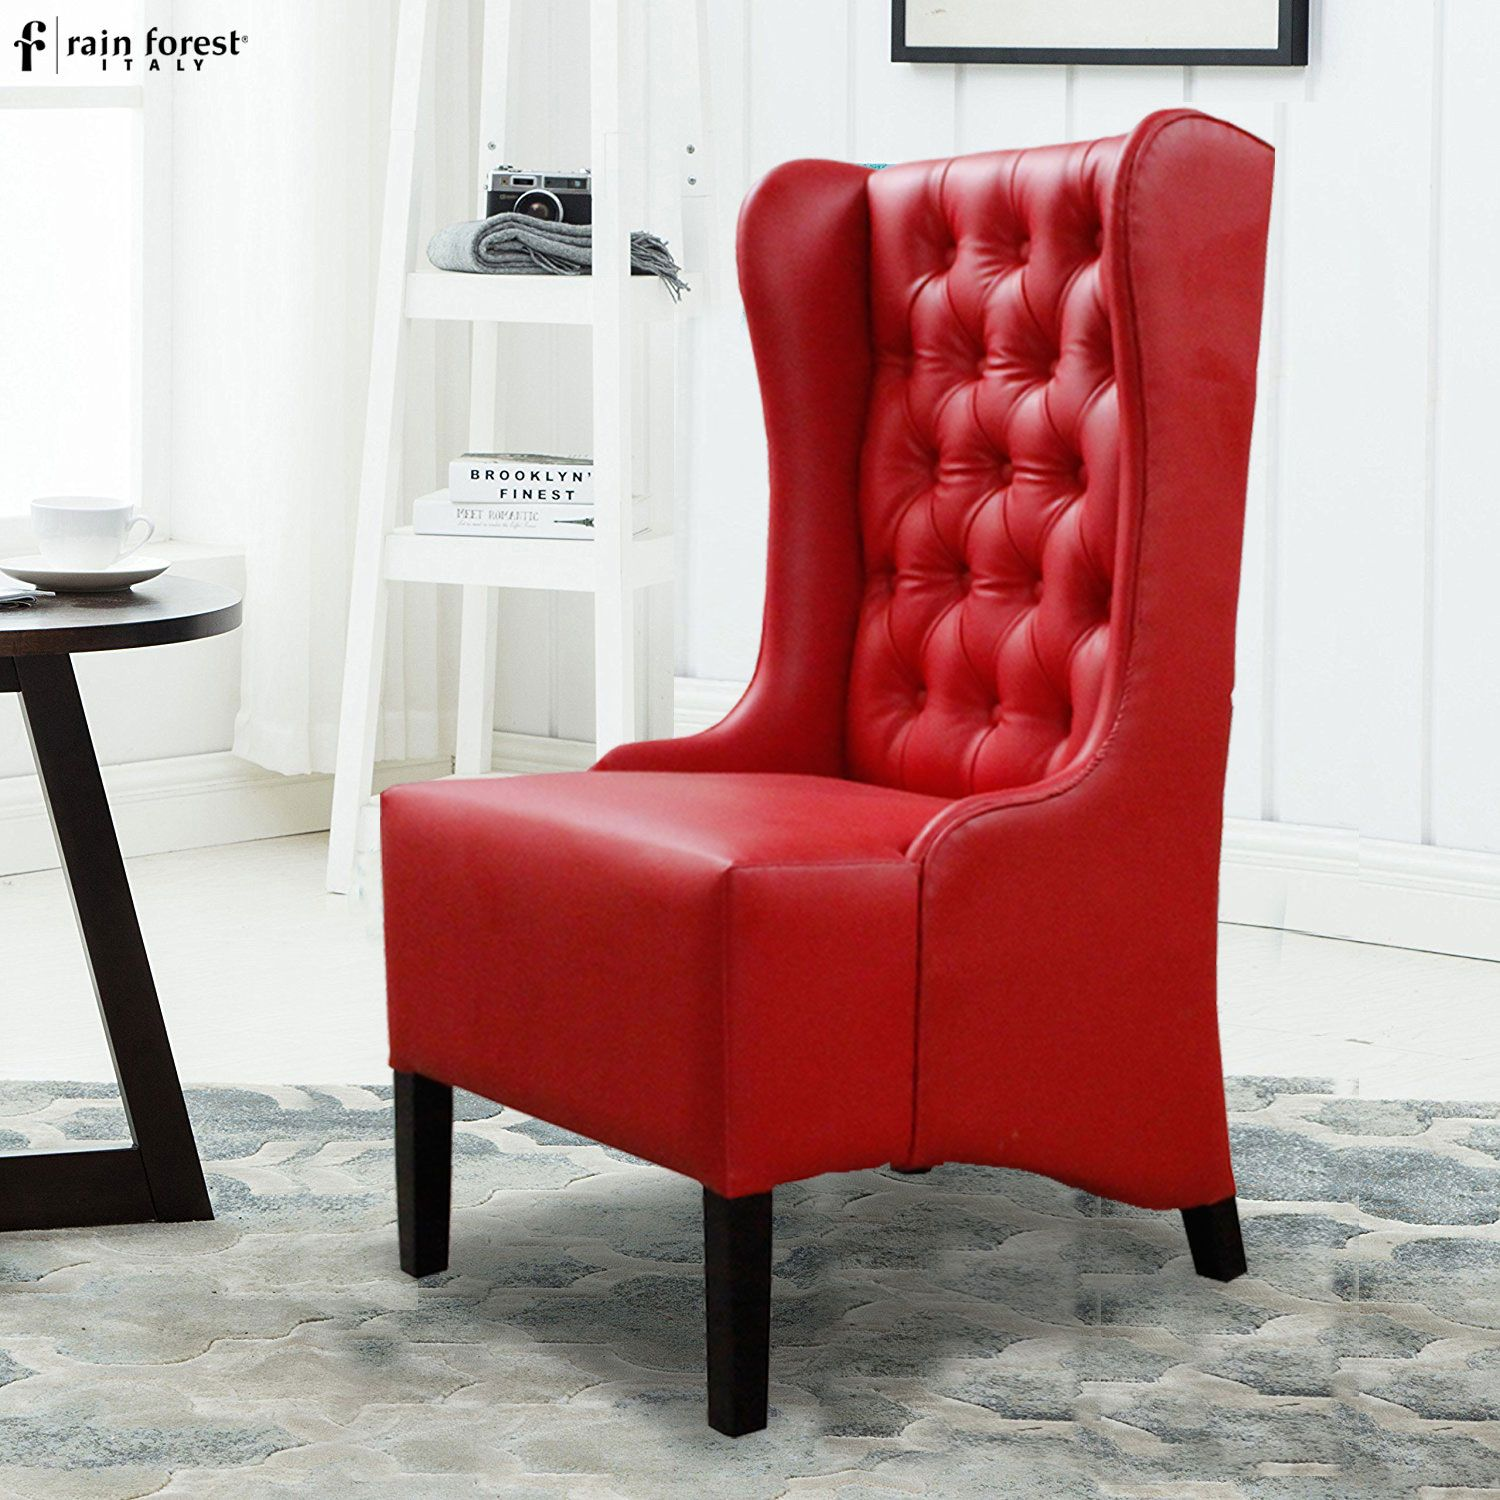 Chair Designs Designer Chairs Accent Chair Accent Chair Designs